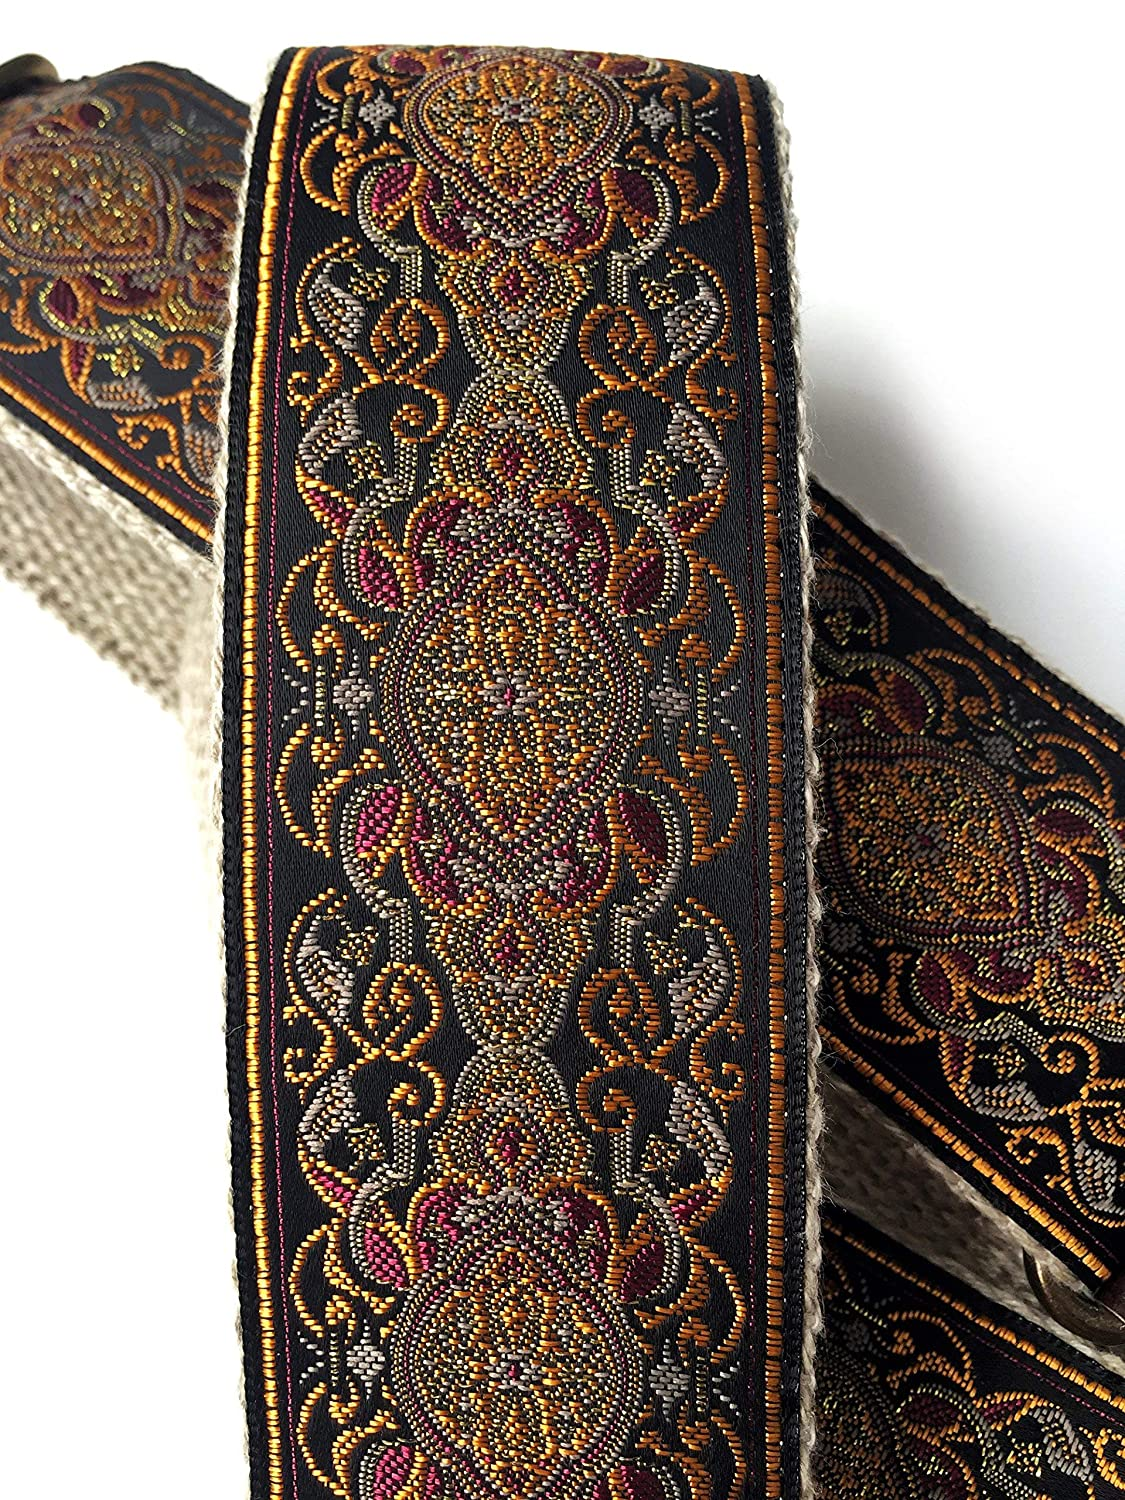 The Jupiter Guitar Strap by Native Sons - Vintage style